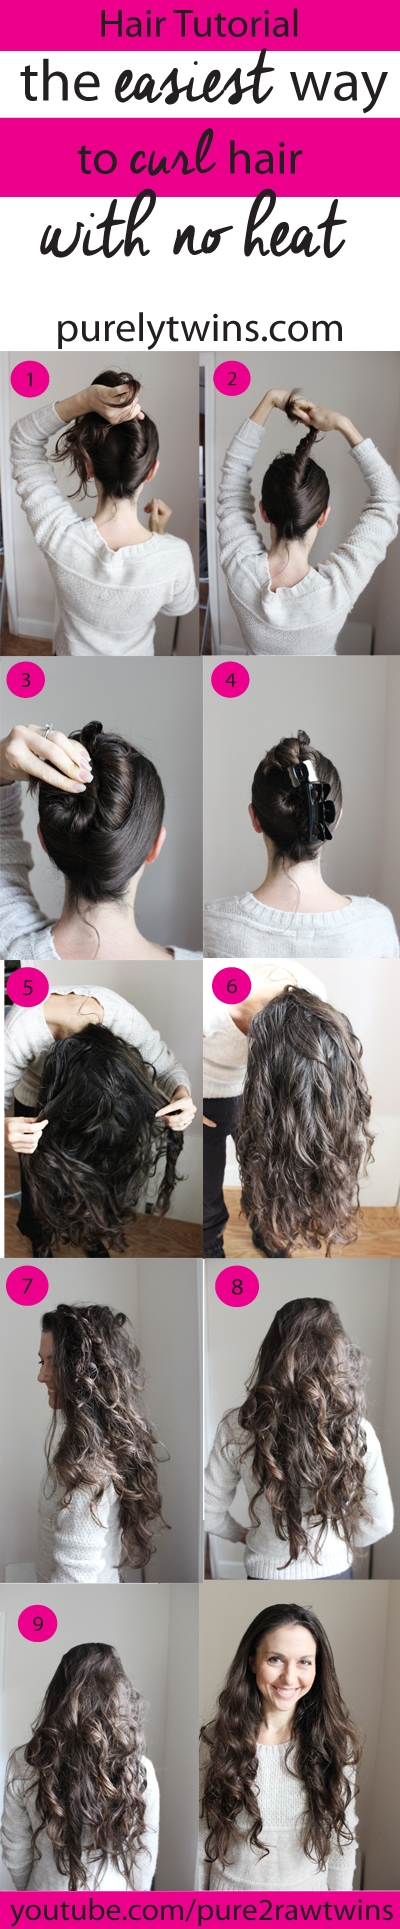 How to make the easiest curls ever with no curling. All you need is a hair clip. If you give this a try make sure to let us know! Have fun curling your hair with no heat or damage to your hair. | purelytwins.com